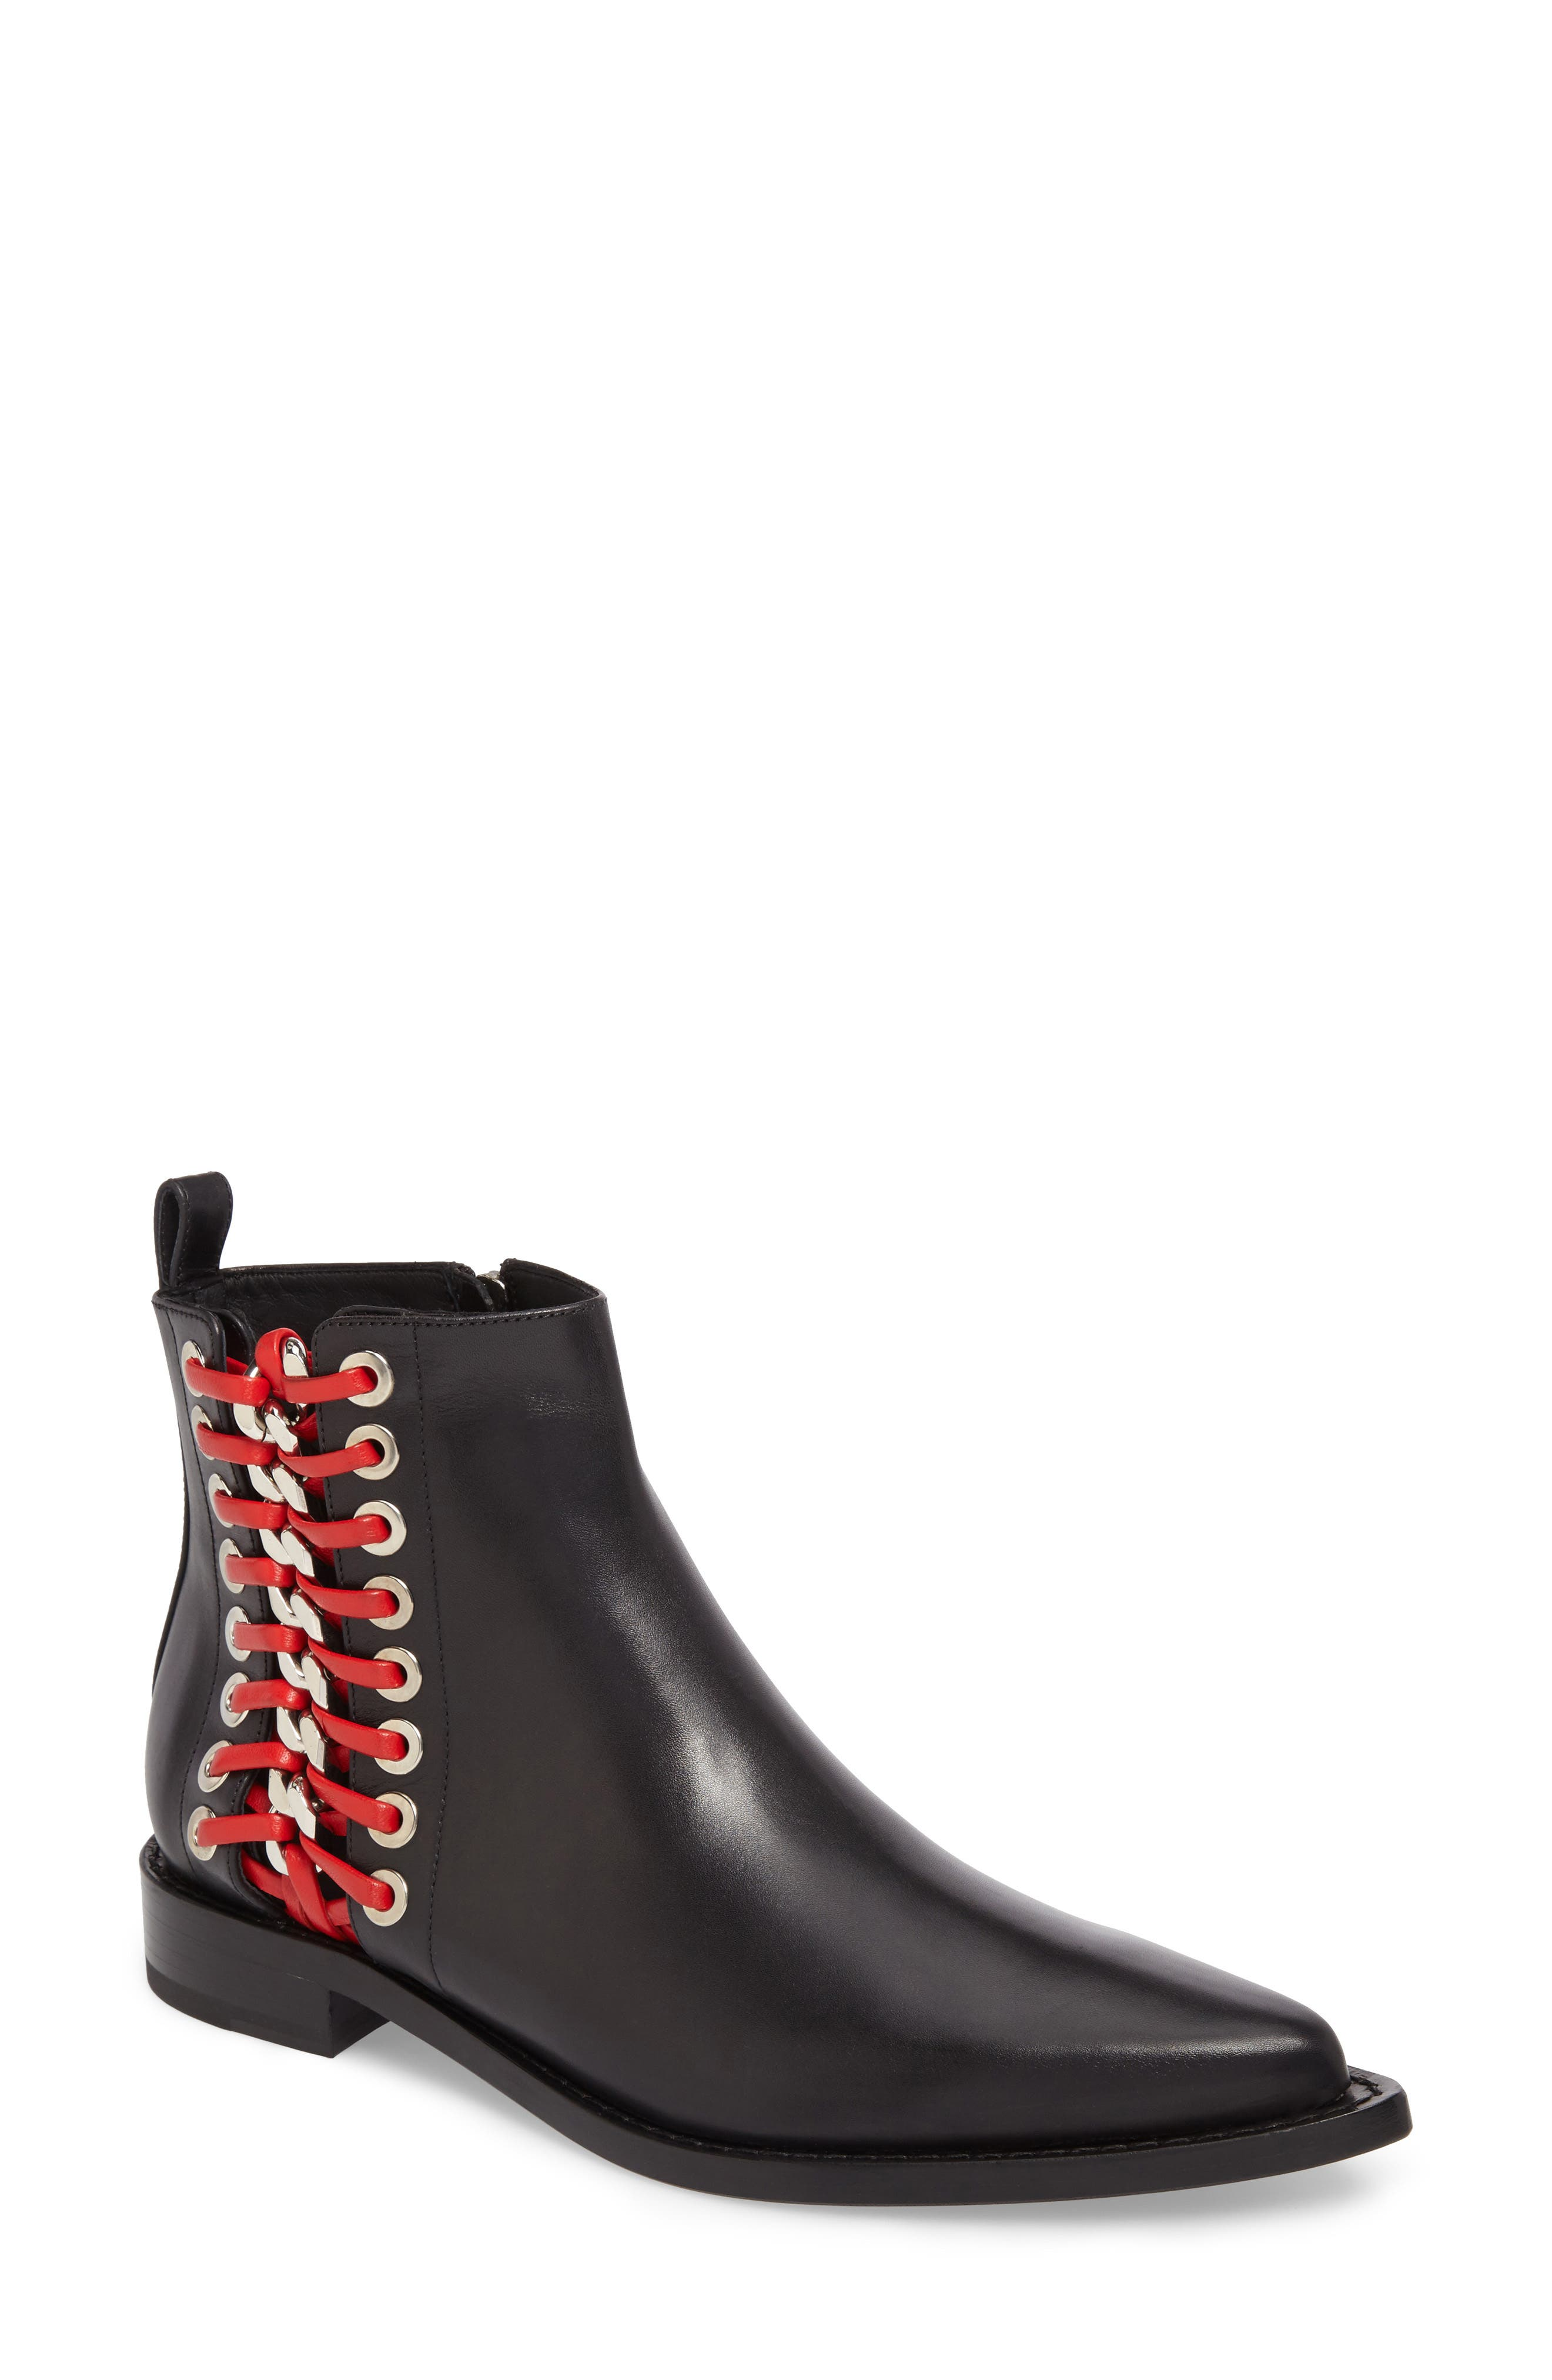 Alternate Image 1 Selected - Alexander McQueen Laced Chain Pointy Toe Boot (Women)